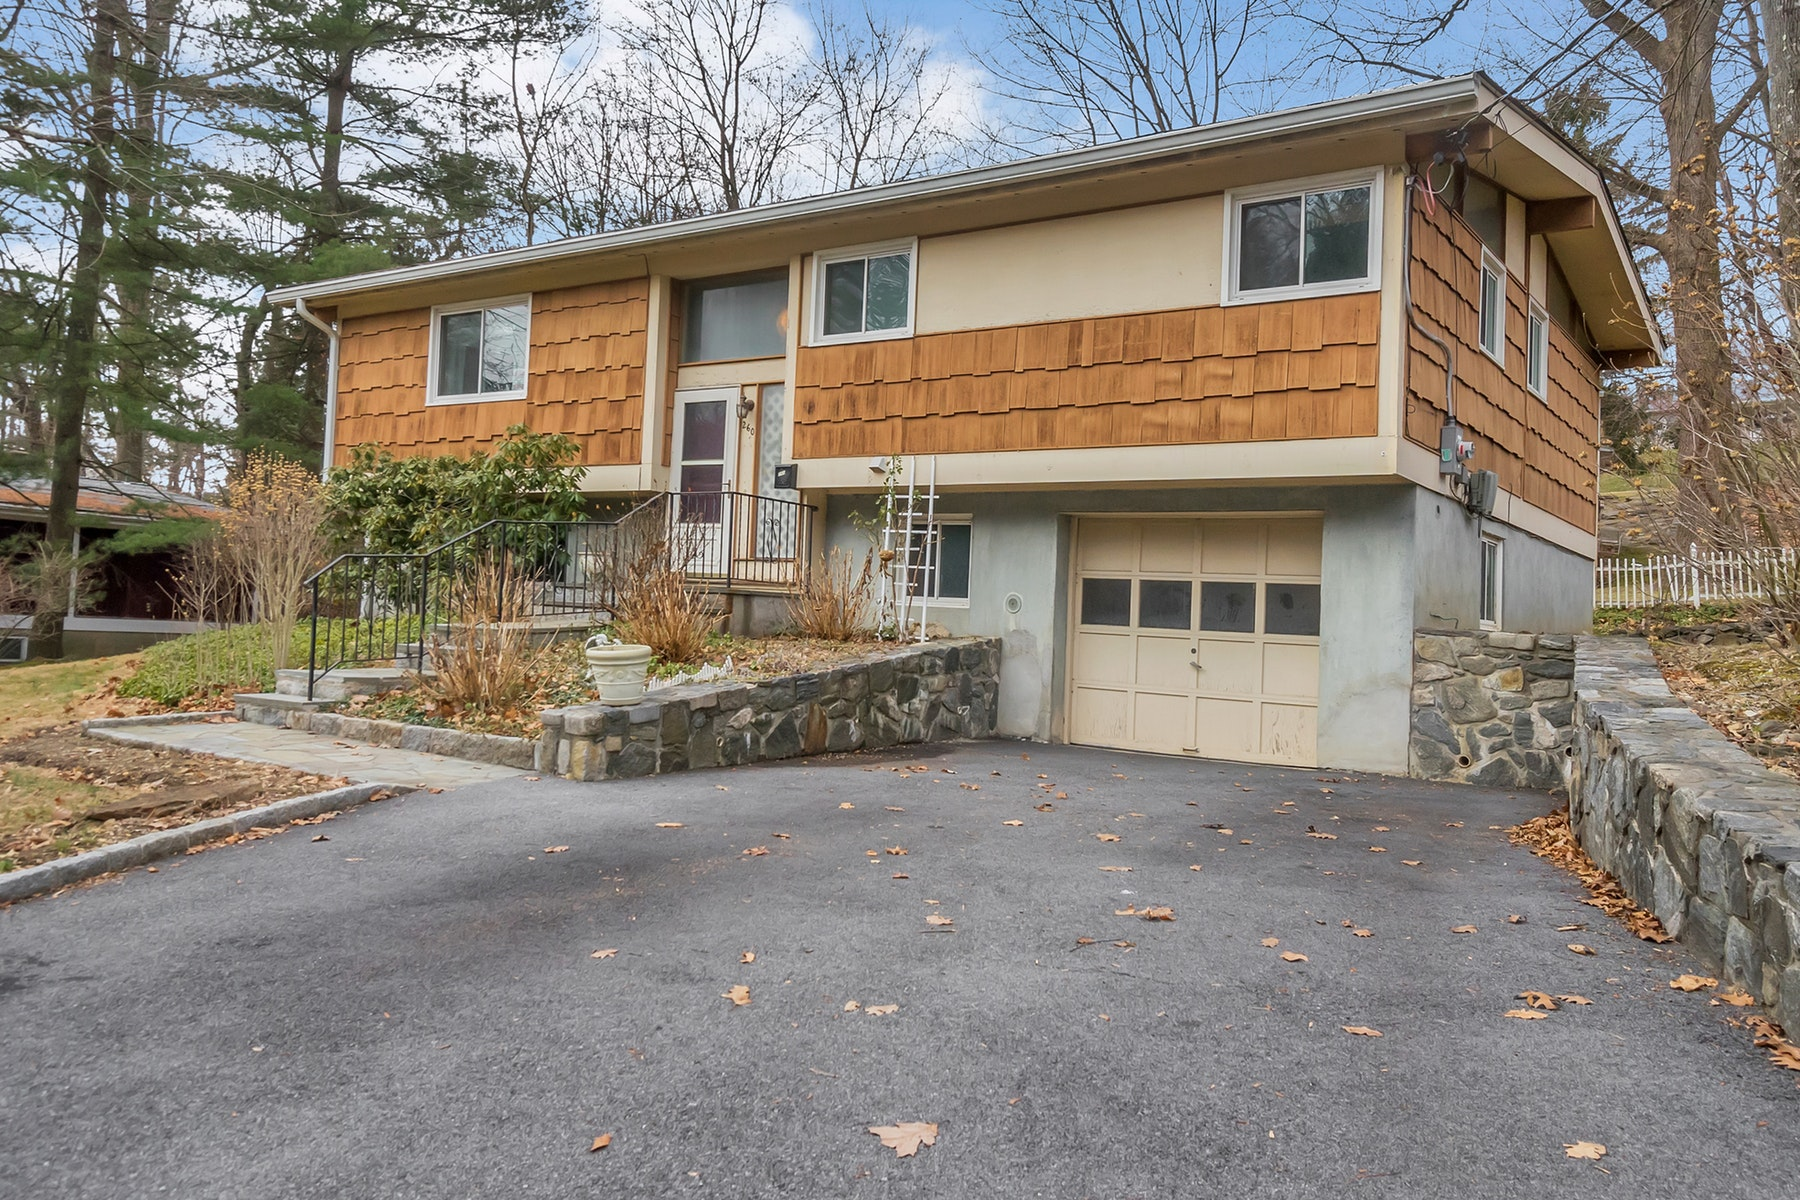 Single Family Homes for Active at Comfortable Raised Ranch 260 North State Road Briarcliff Manor, New York 10510 United States